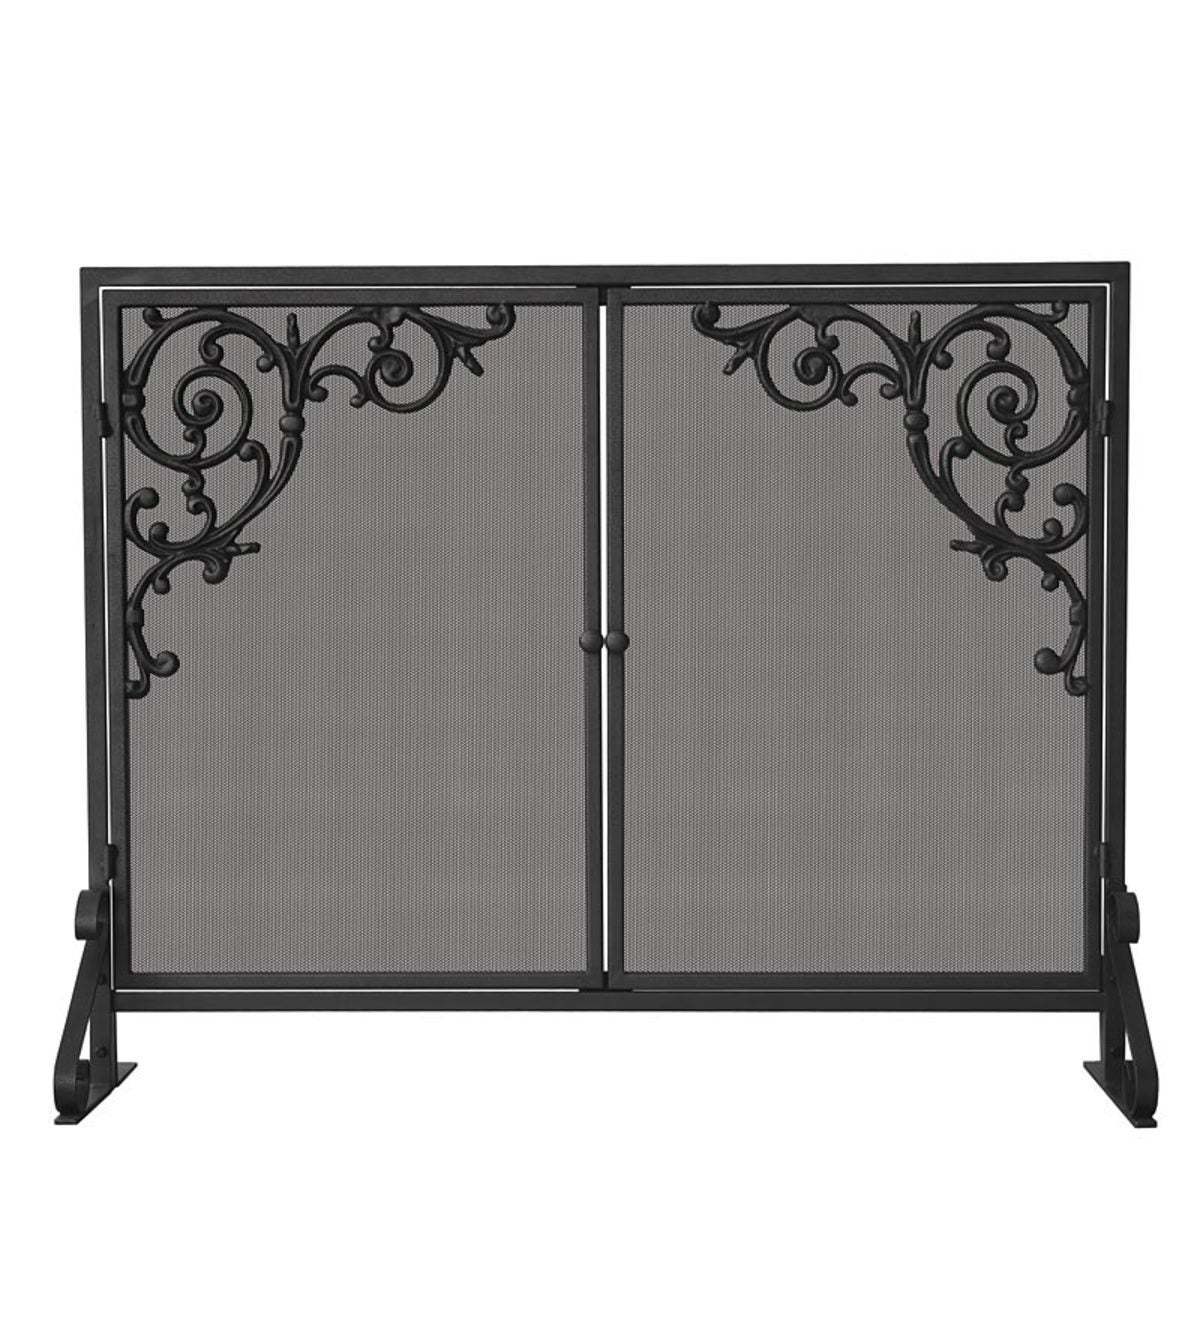 Olde World Single Panel Fireplace Screen with Doors and Cast Scrolls - Iron